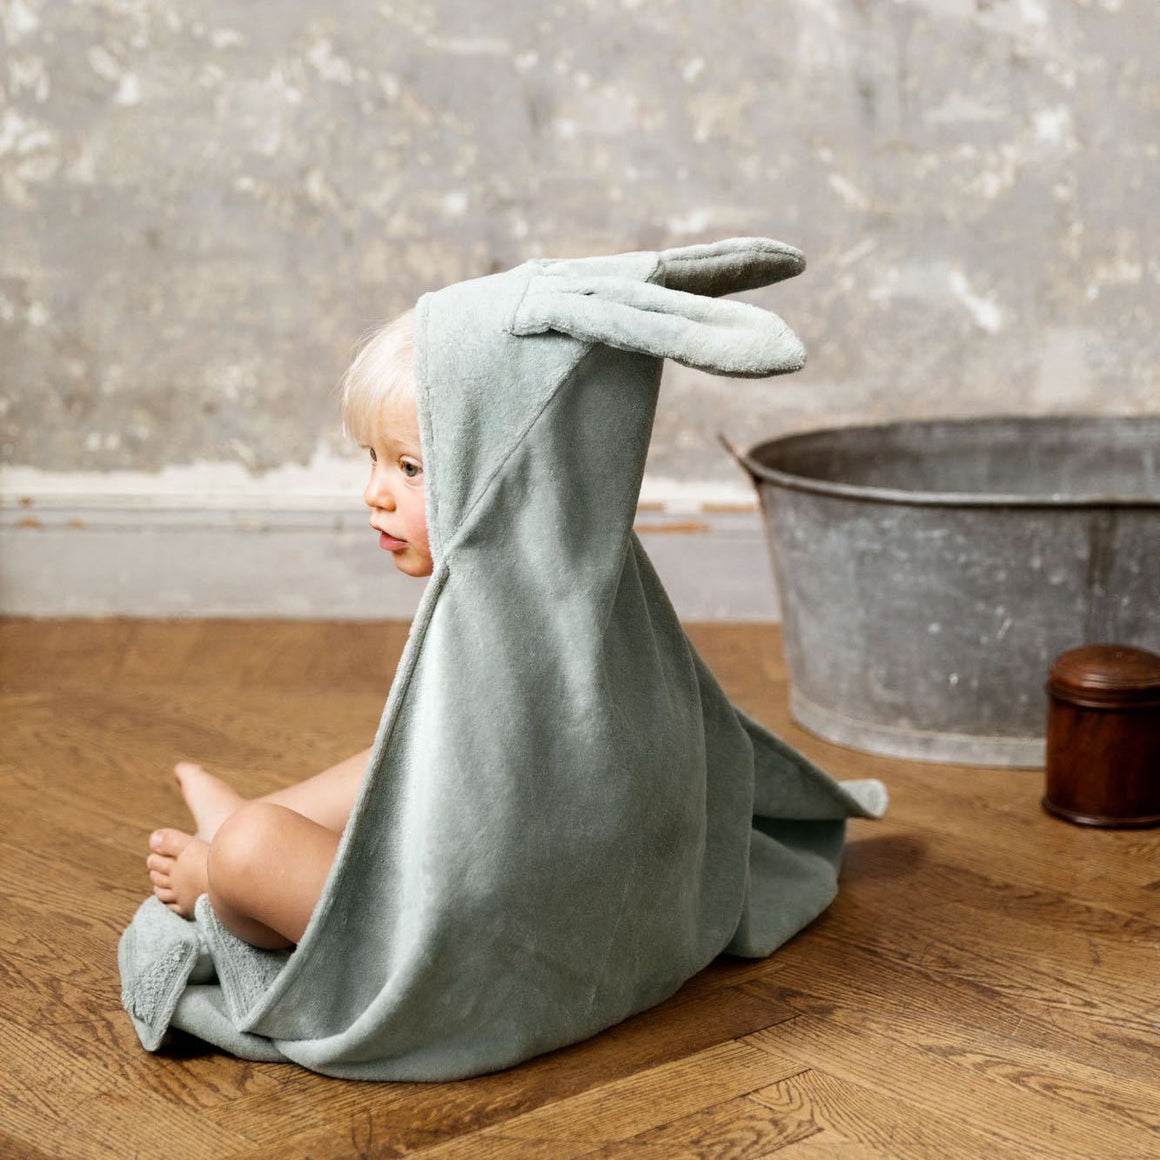 Elodie Details - Hooded towel - Mineral green - Towel - Bmini | Design for Kids